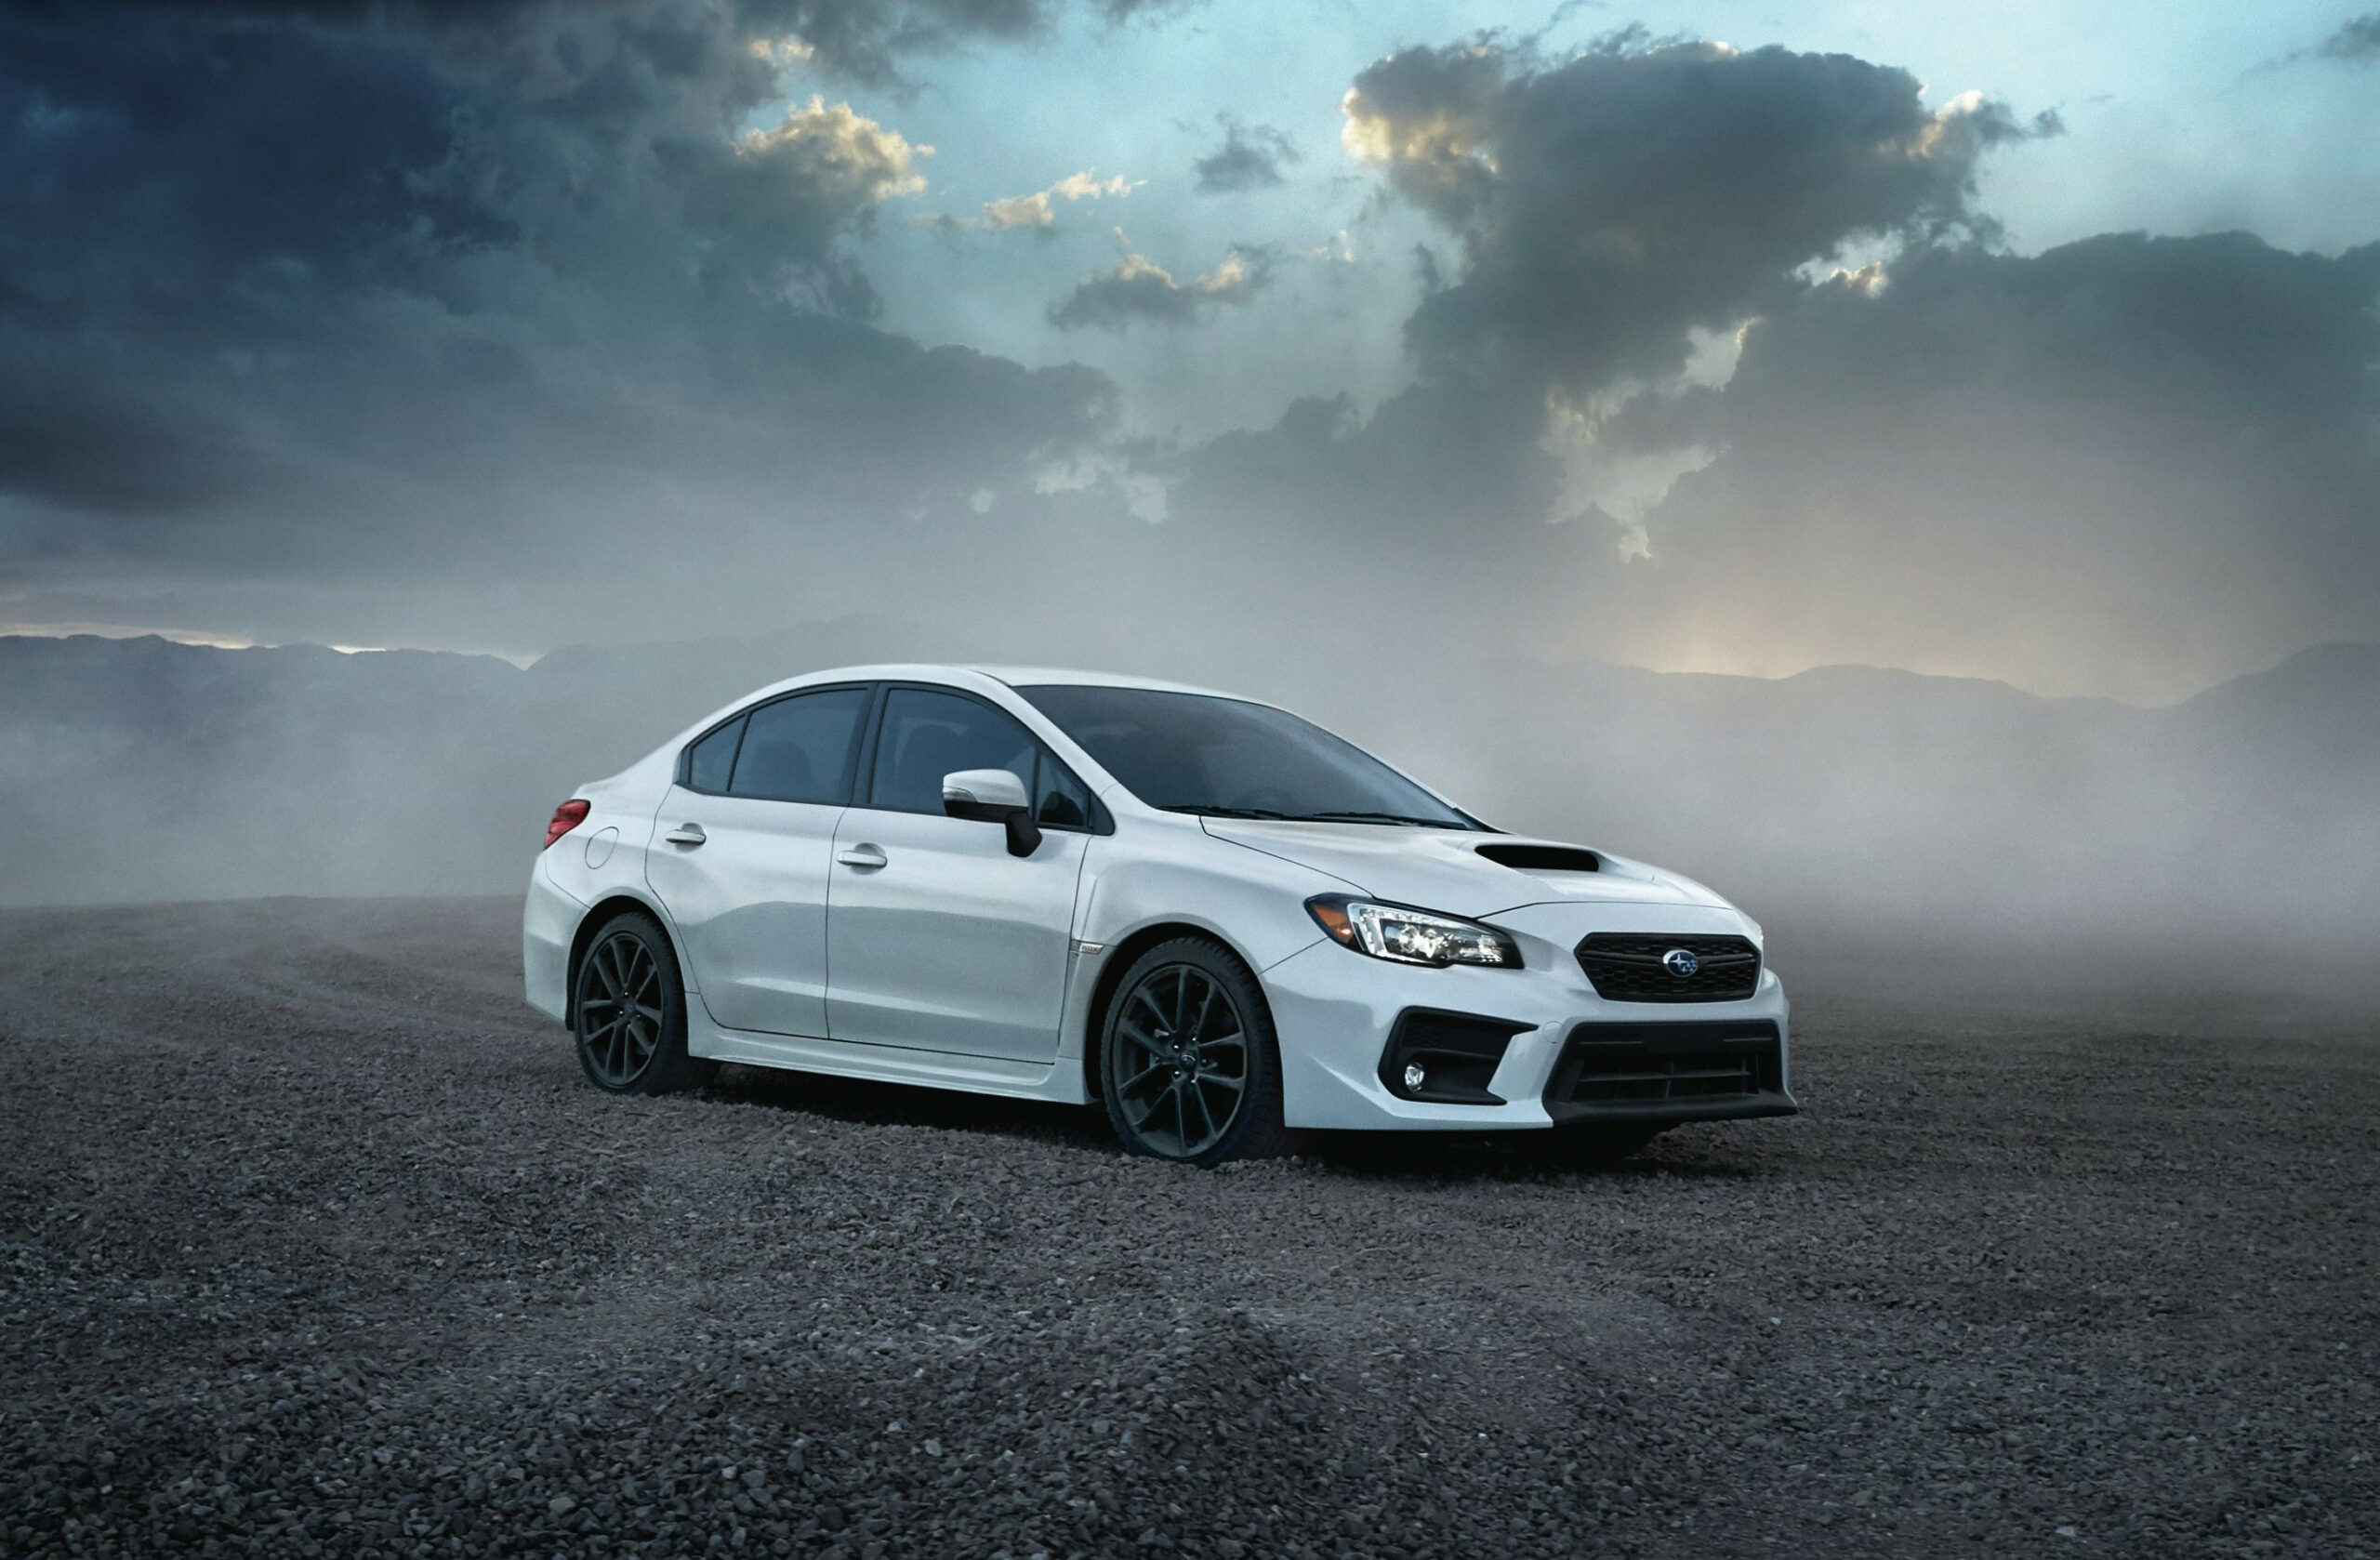 6 Subaru WRX Review, Pricing, and Specs